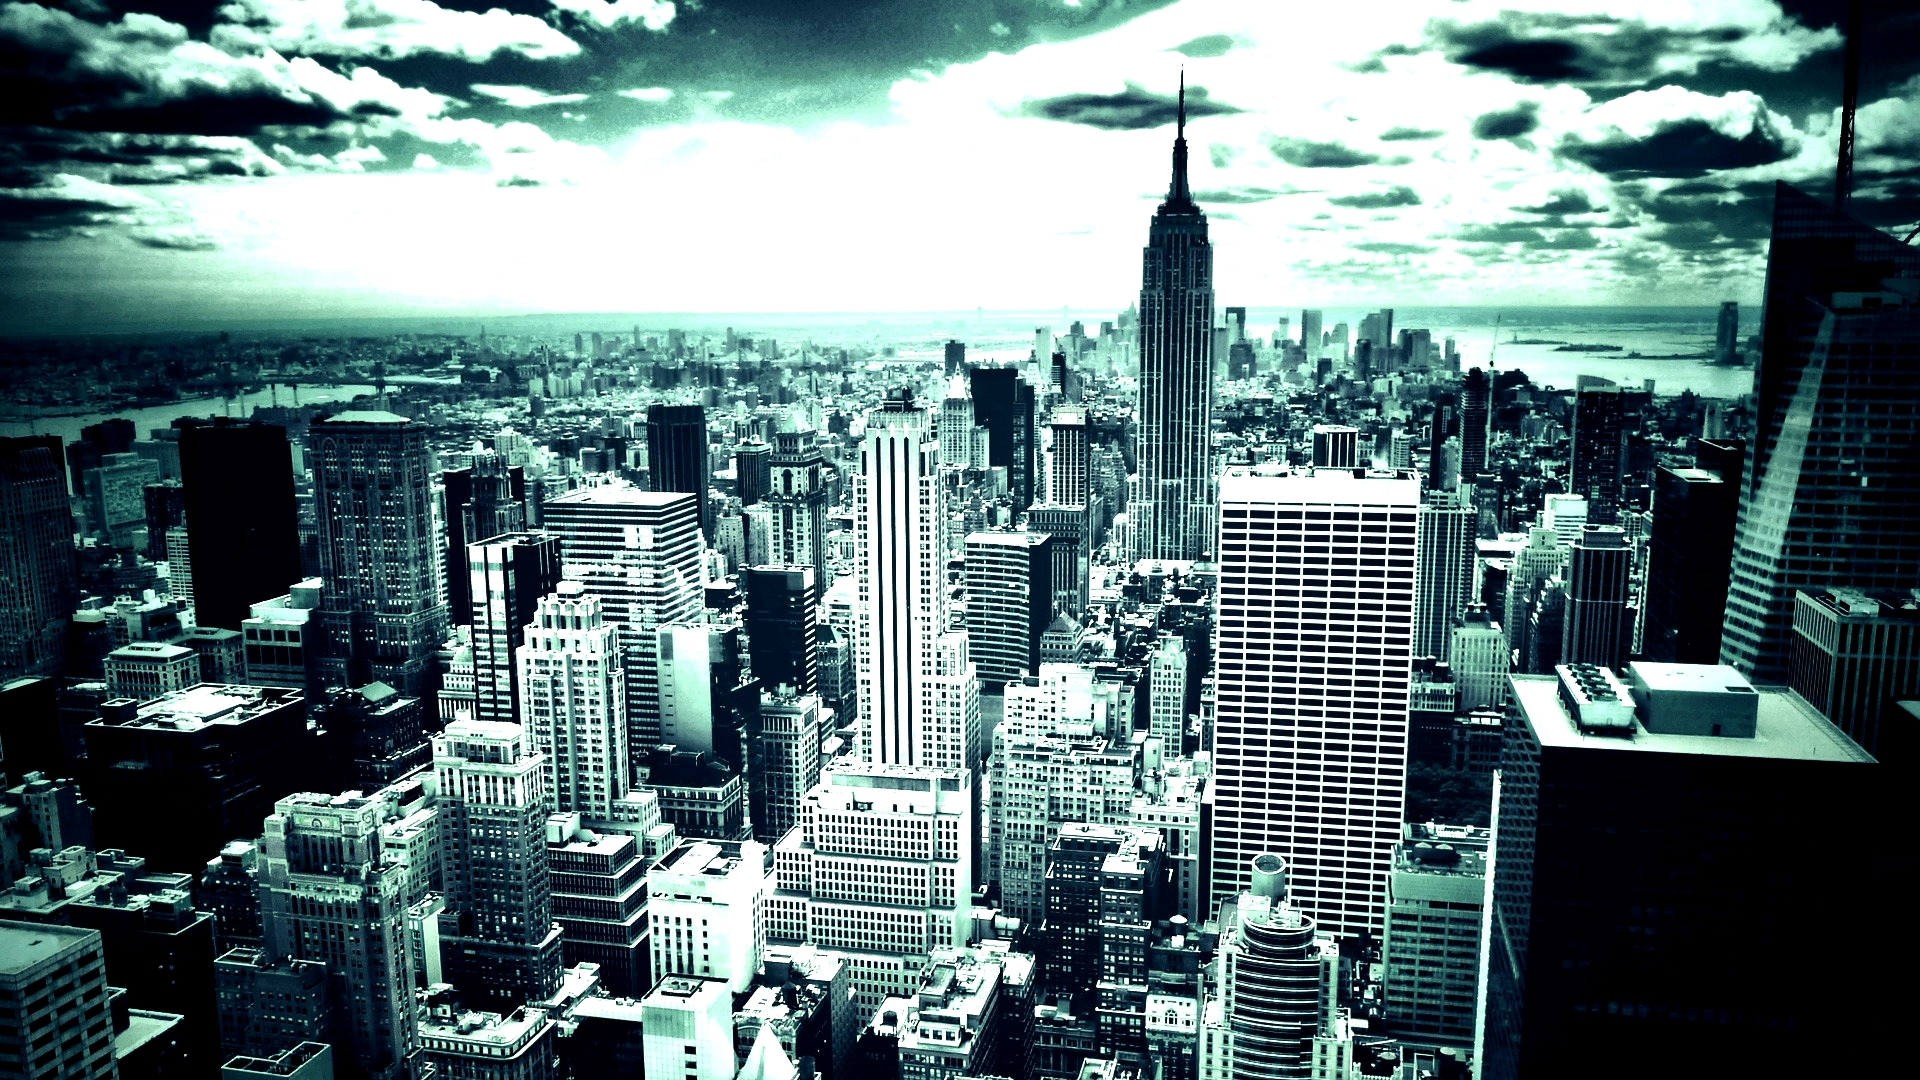 40 HD New York City WallpapersBackgrounds For Download 1920x1080